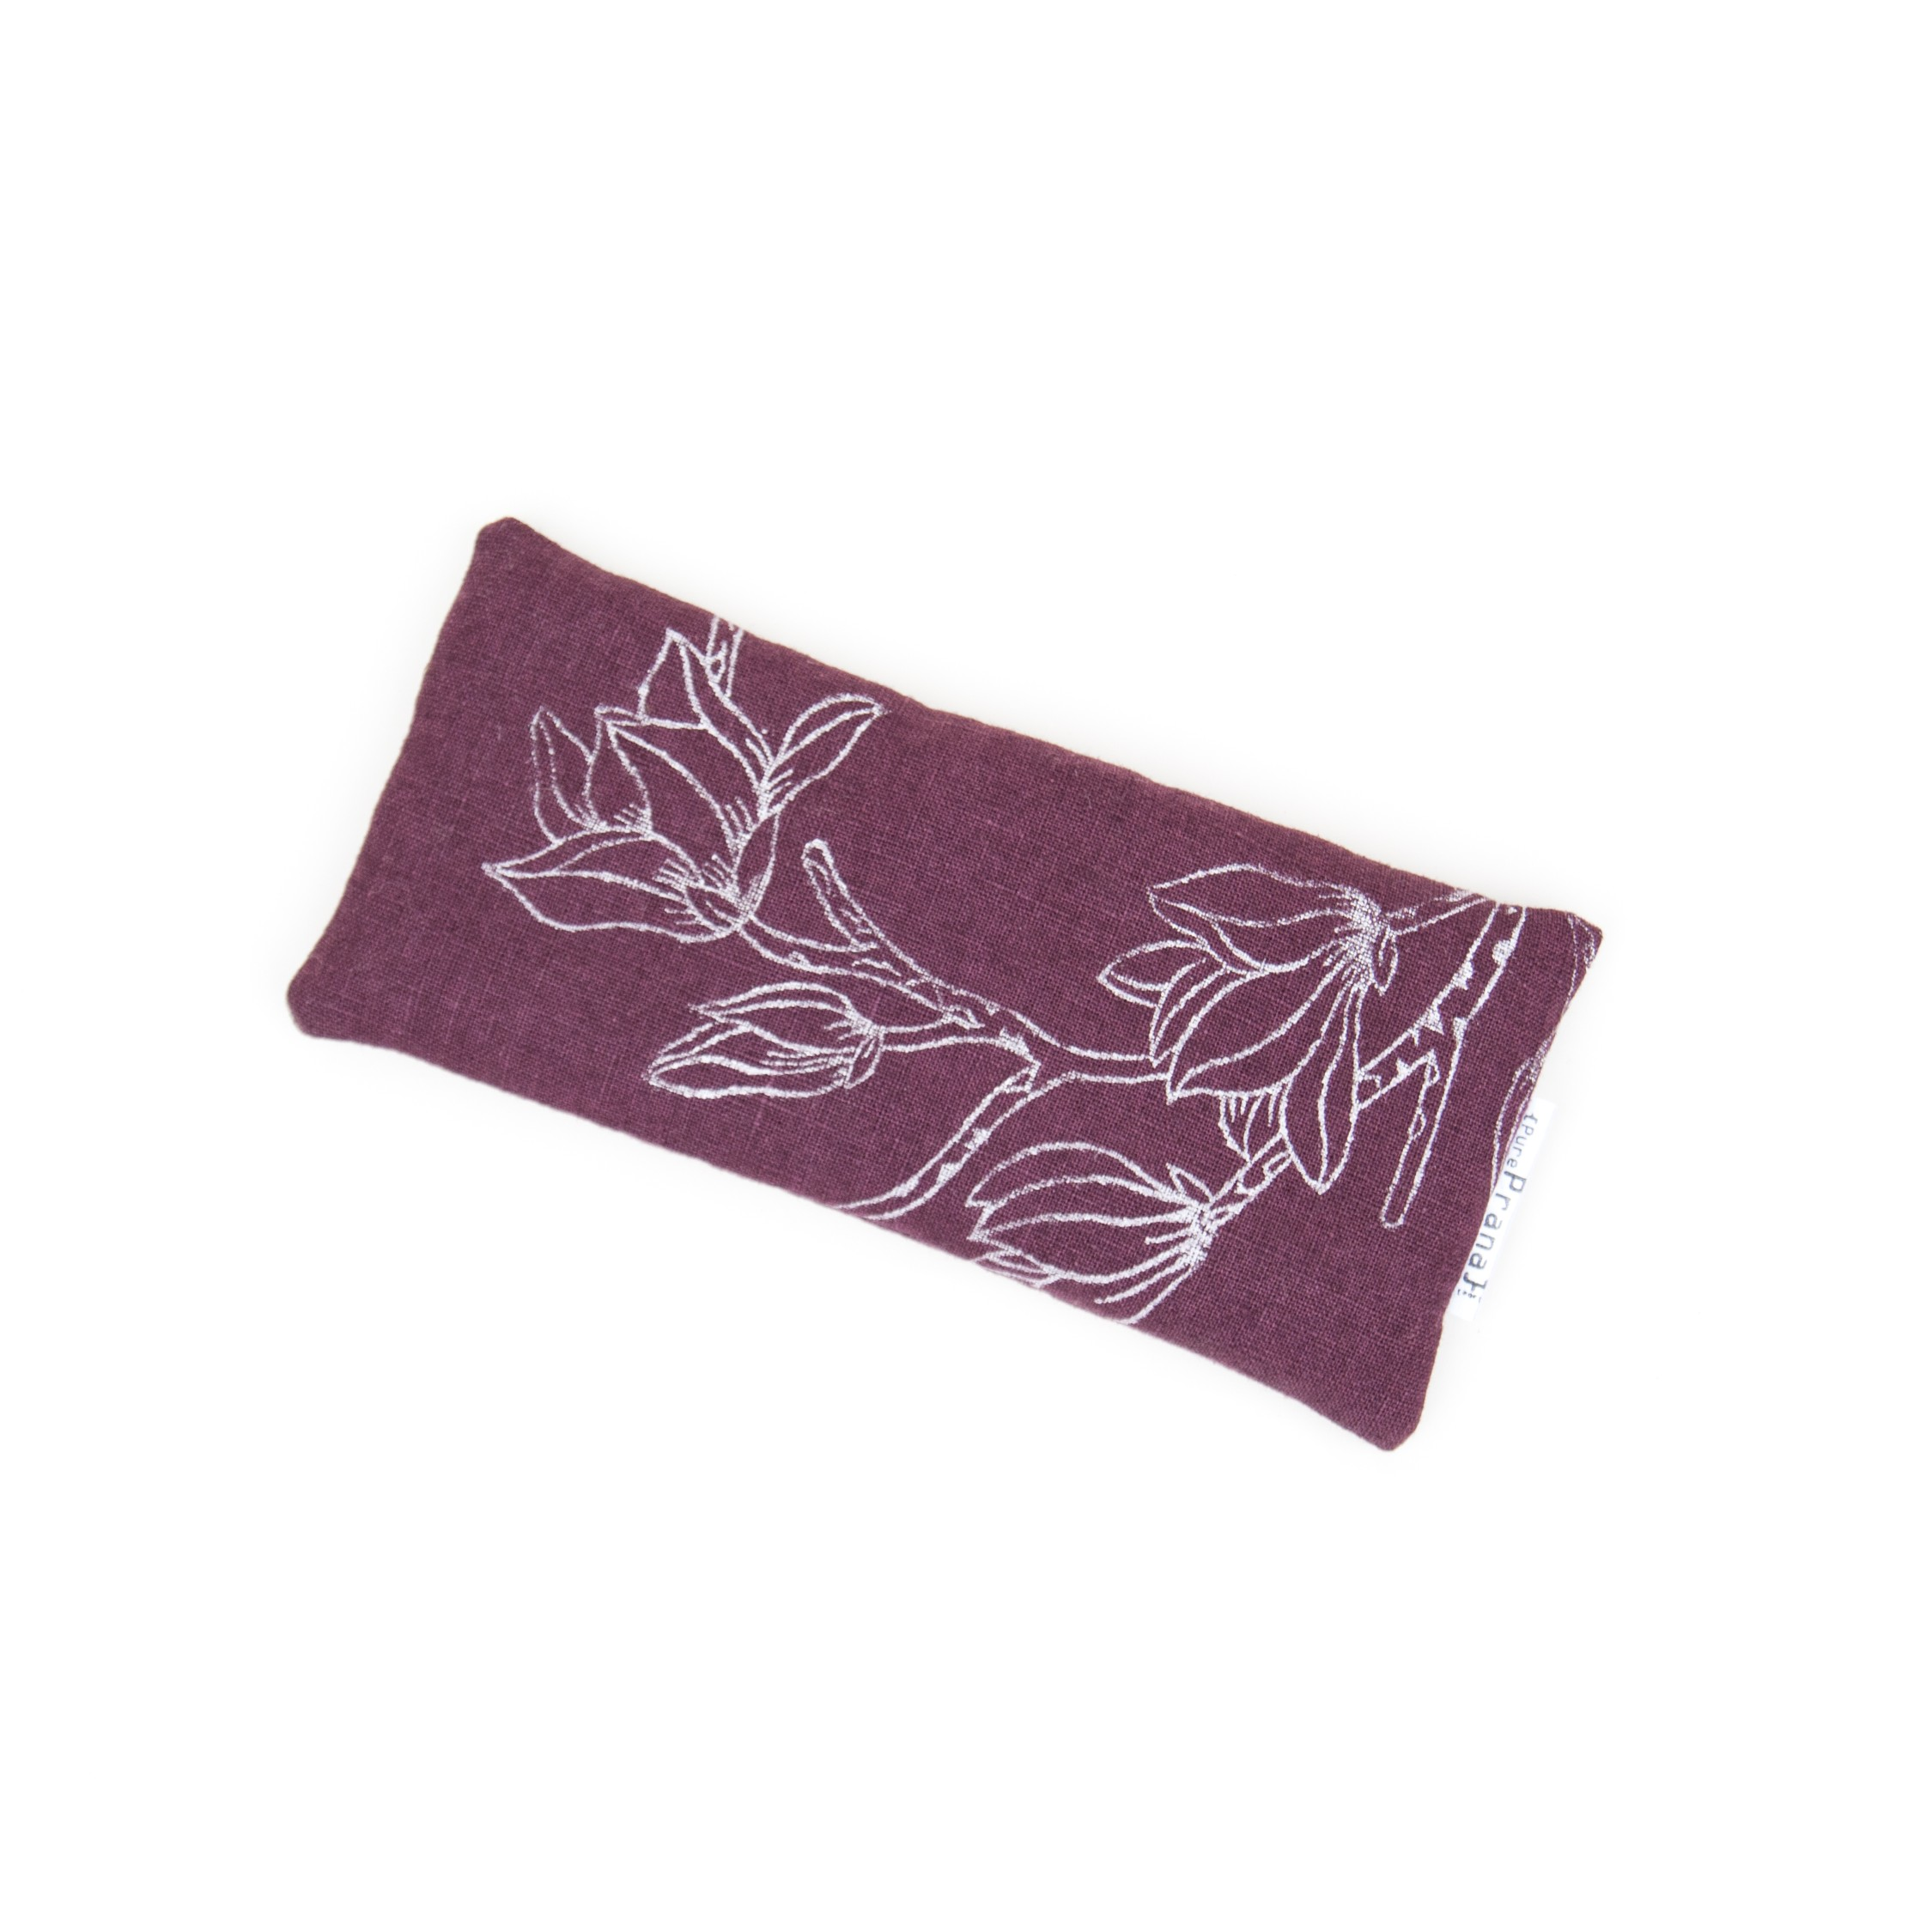 Eye pillow Magnolia Eggplant